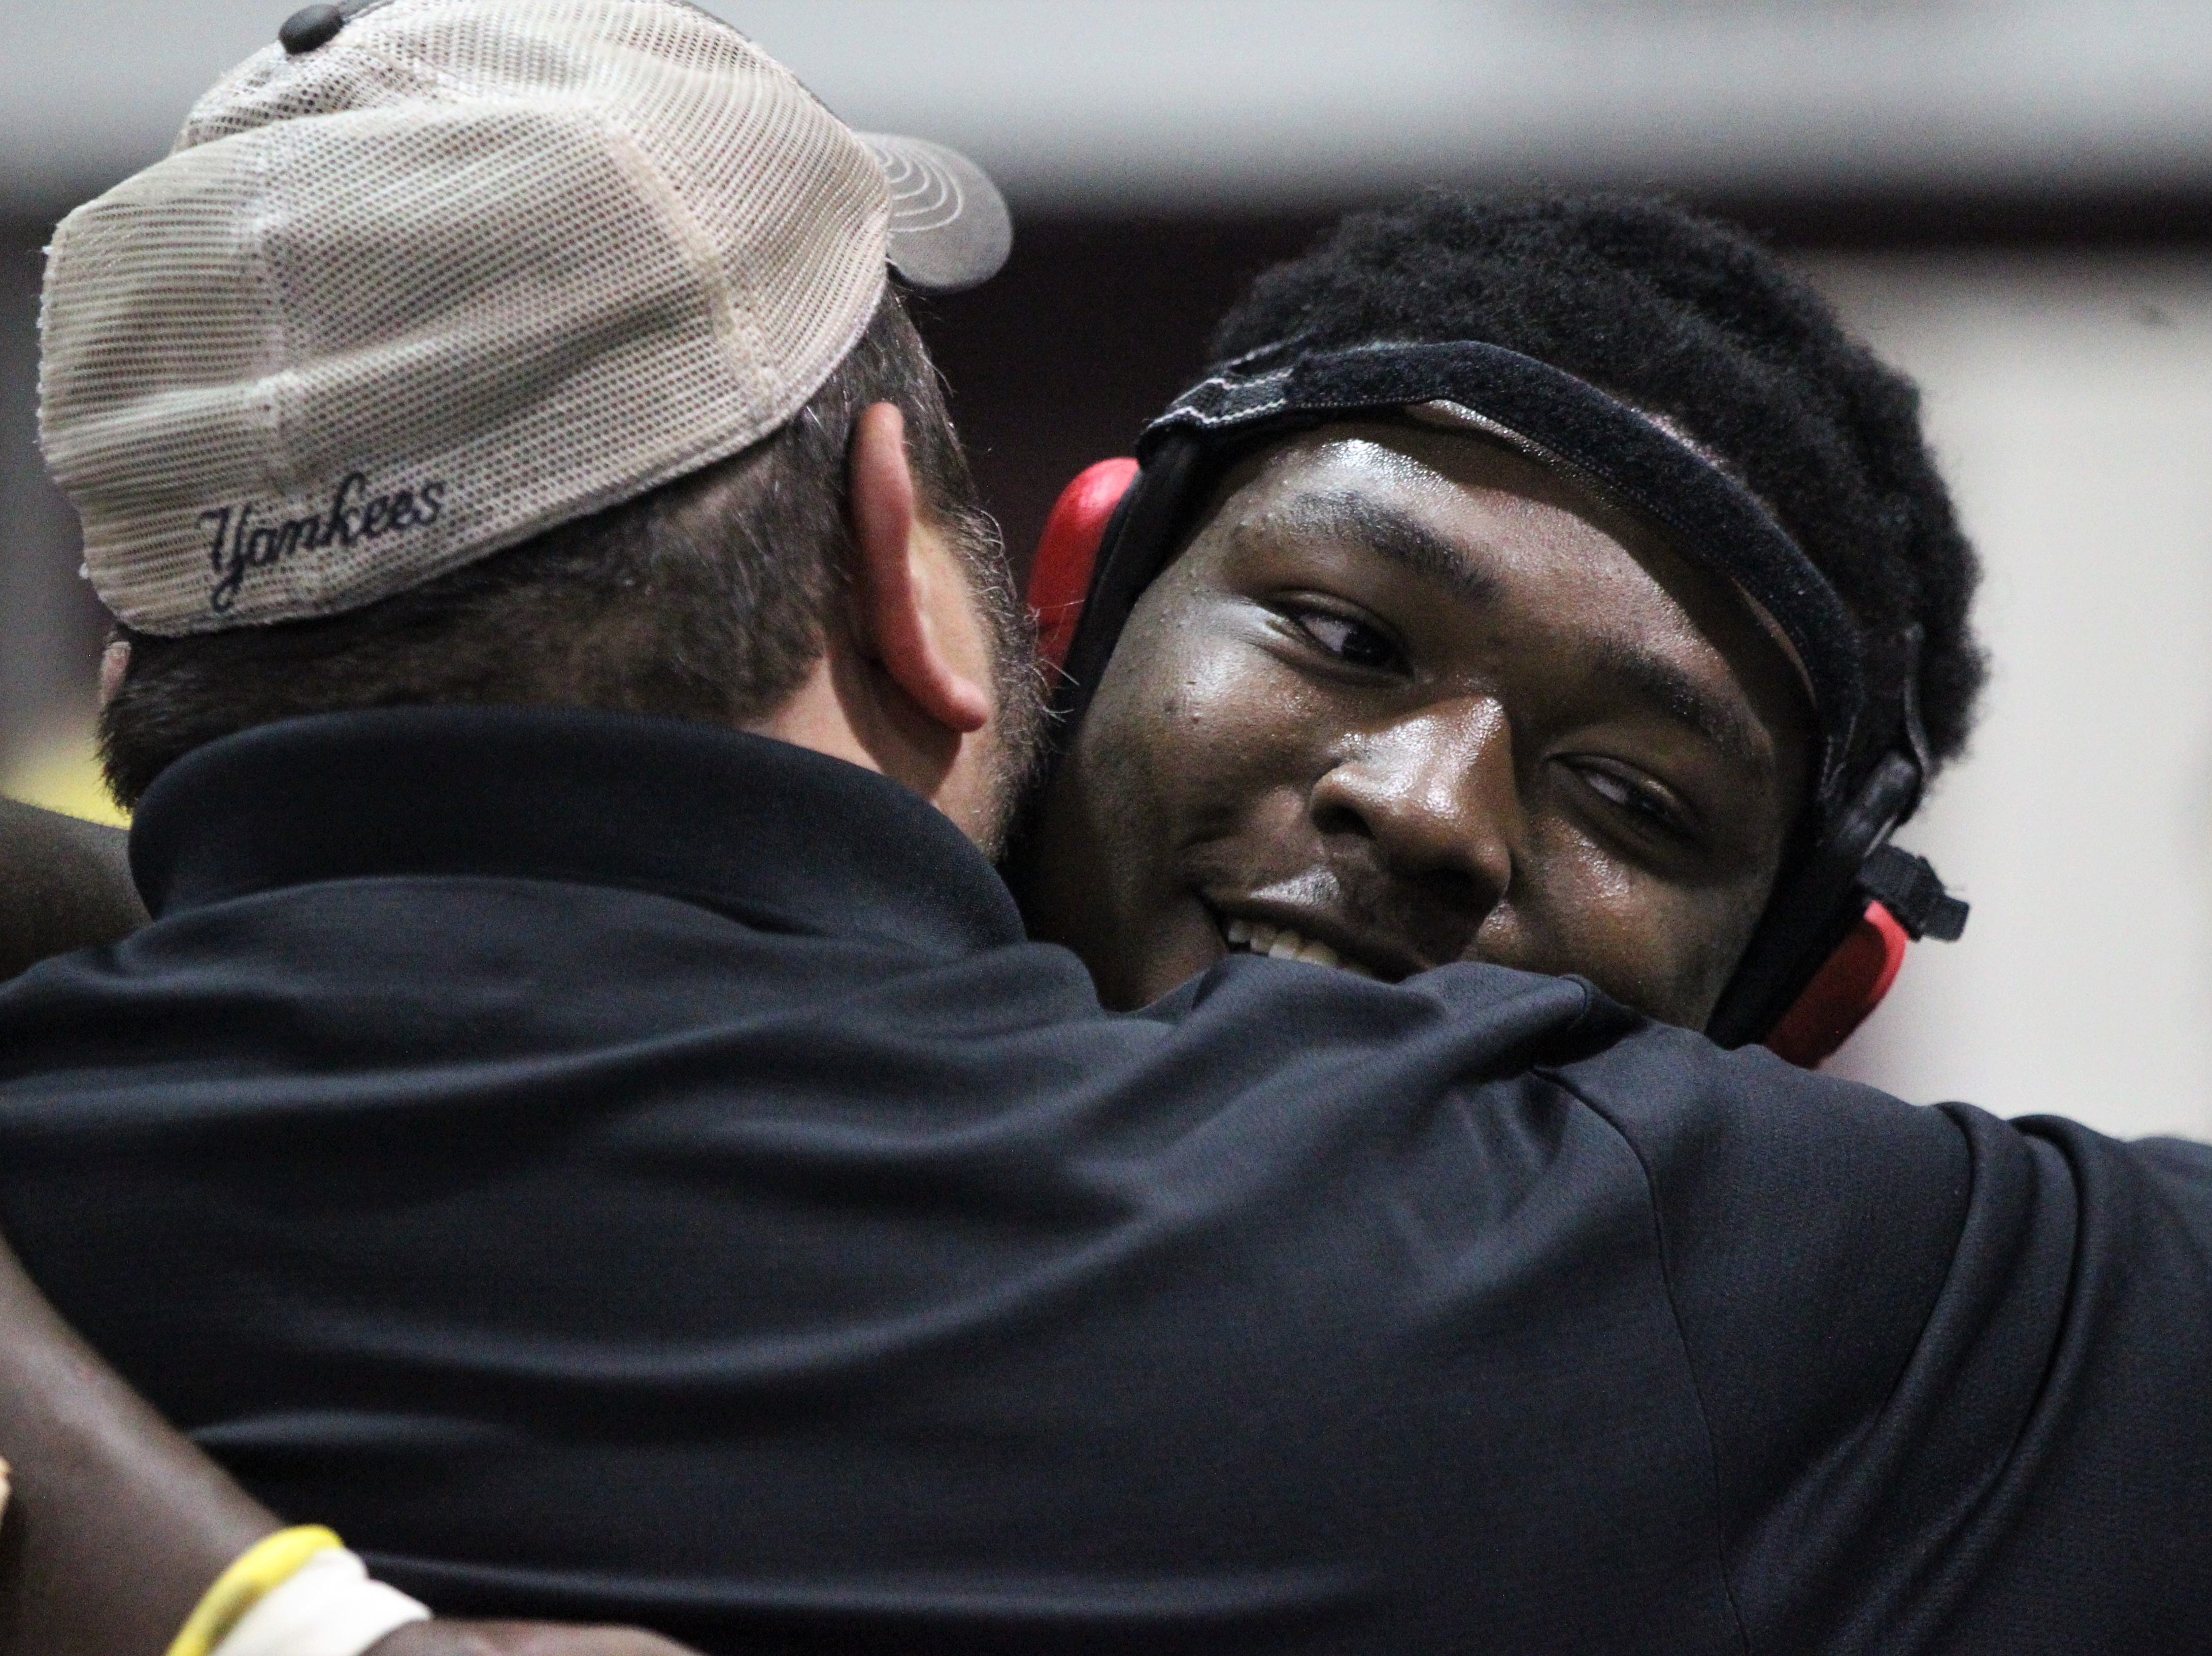 Leon sophomore Josh Seabrooks hugs Lions wrestling coach Chuck Ringel after Seabrooks qualified for the state tournament at 220 pounds despite being a first-year wrestler. Region 1-2A wrestling tournament at Chiles on March 2, 2019.